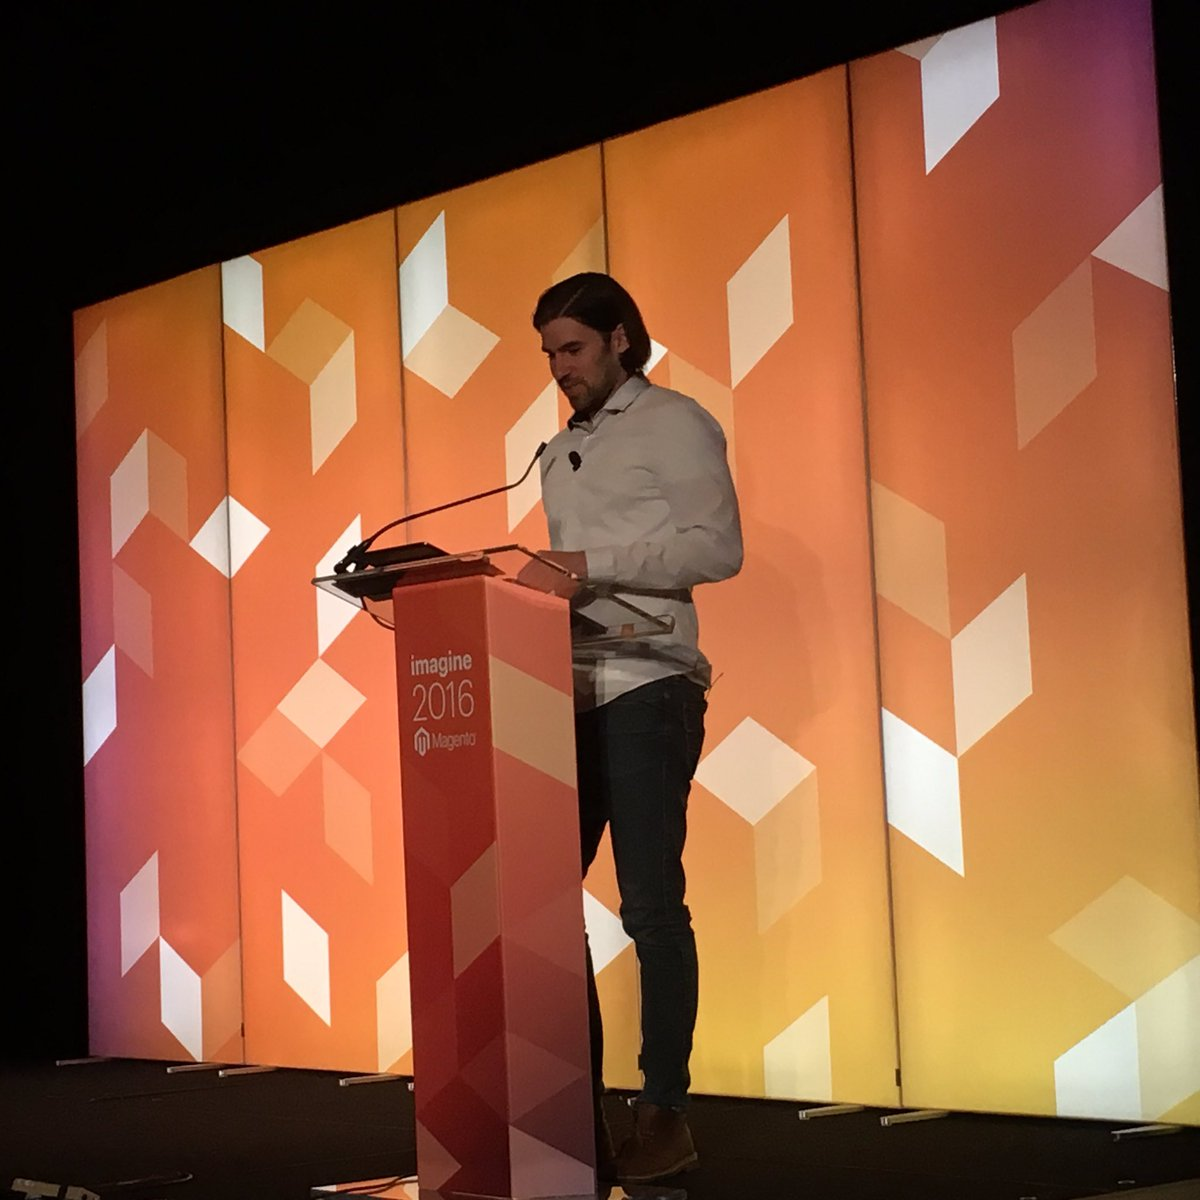 monocat: #MagentoConfessions First time attending a @Falkowski session in person #MagentoImagine https://t.co/3g2CJBnoL6